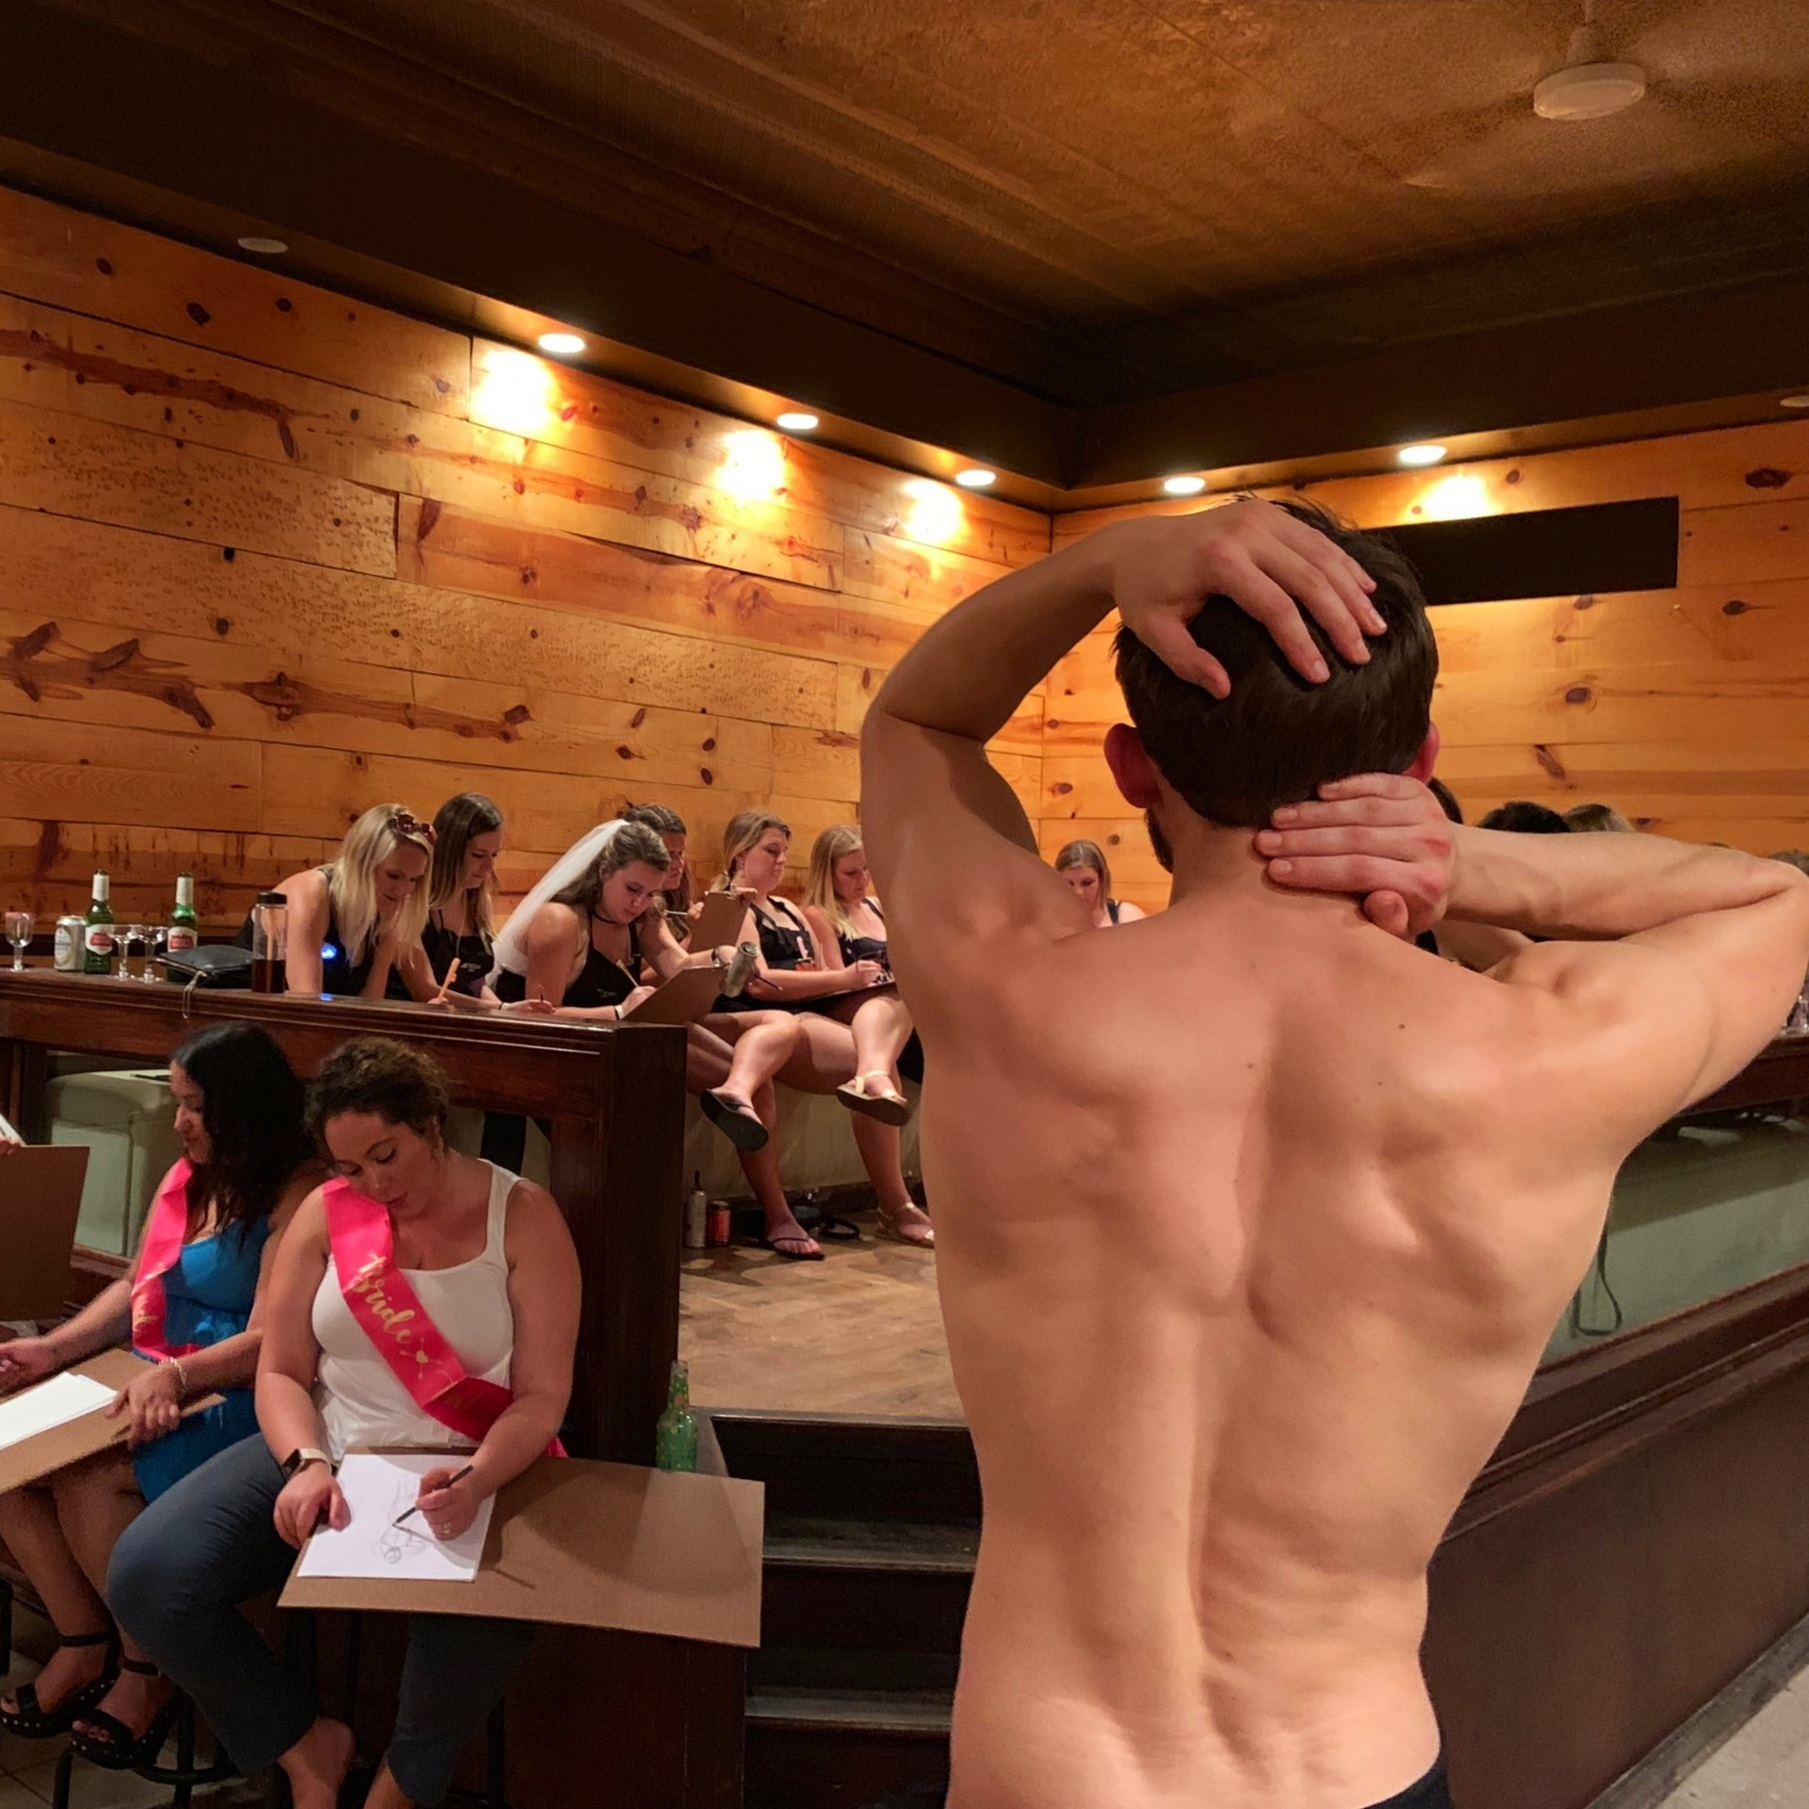 Bachelorette Party: Drinks, Painting & Nude MALE Model